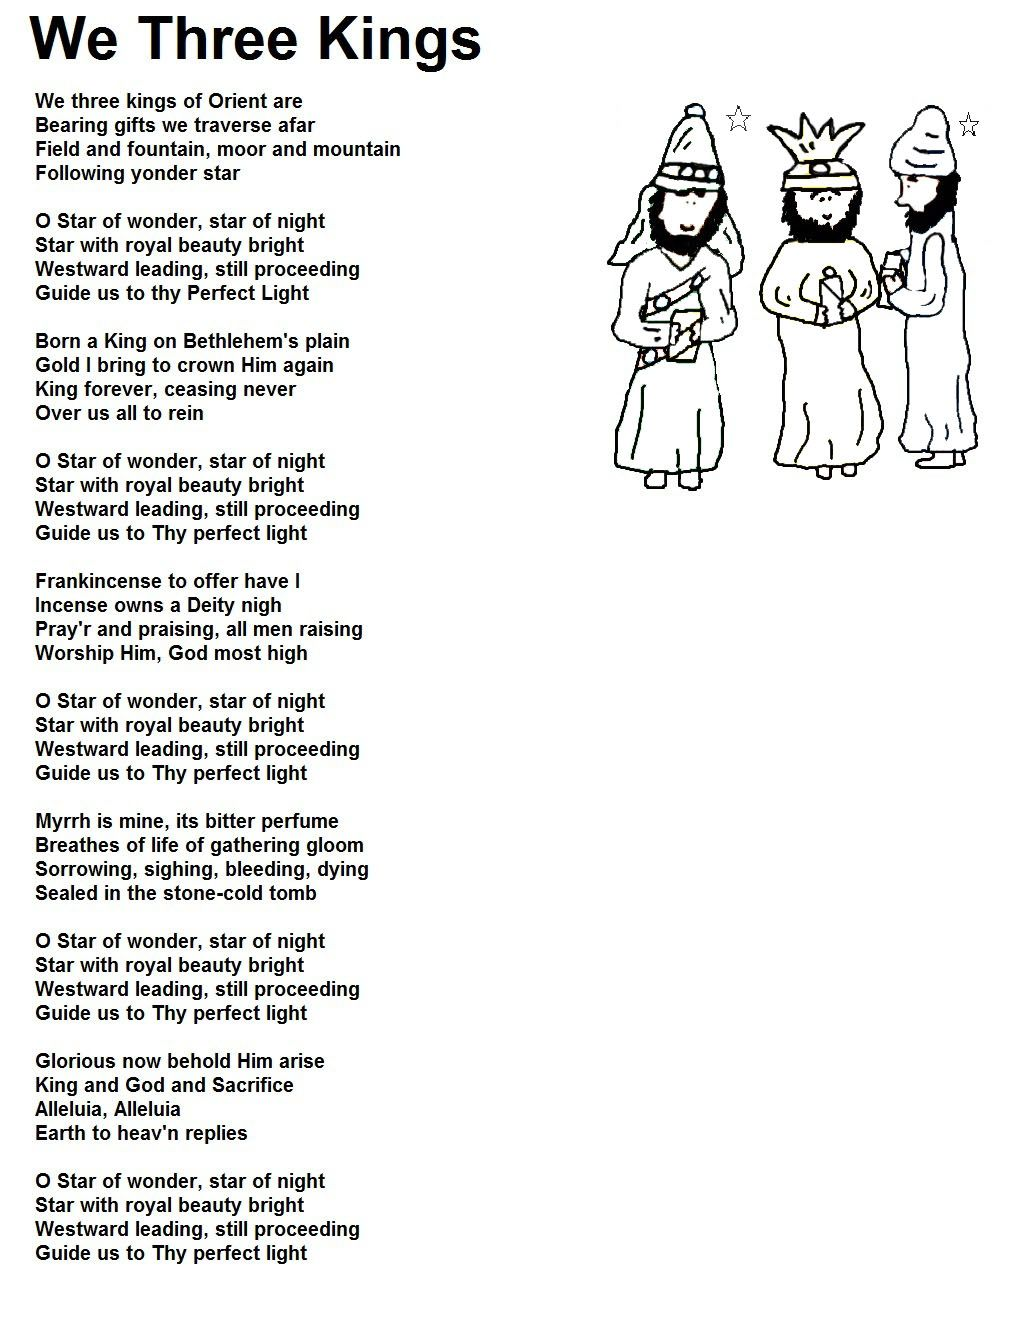 We three kings | Christmas songs lyrics, We three kings, Christmas carols  lyrics